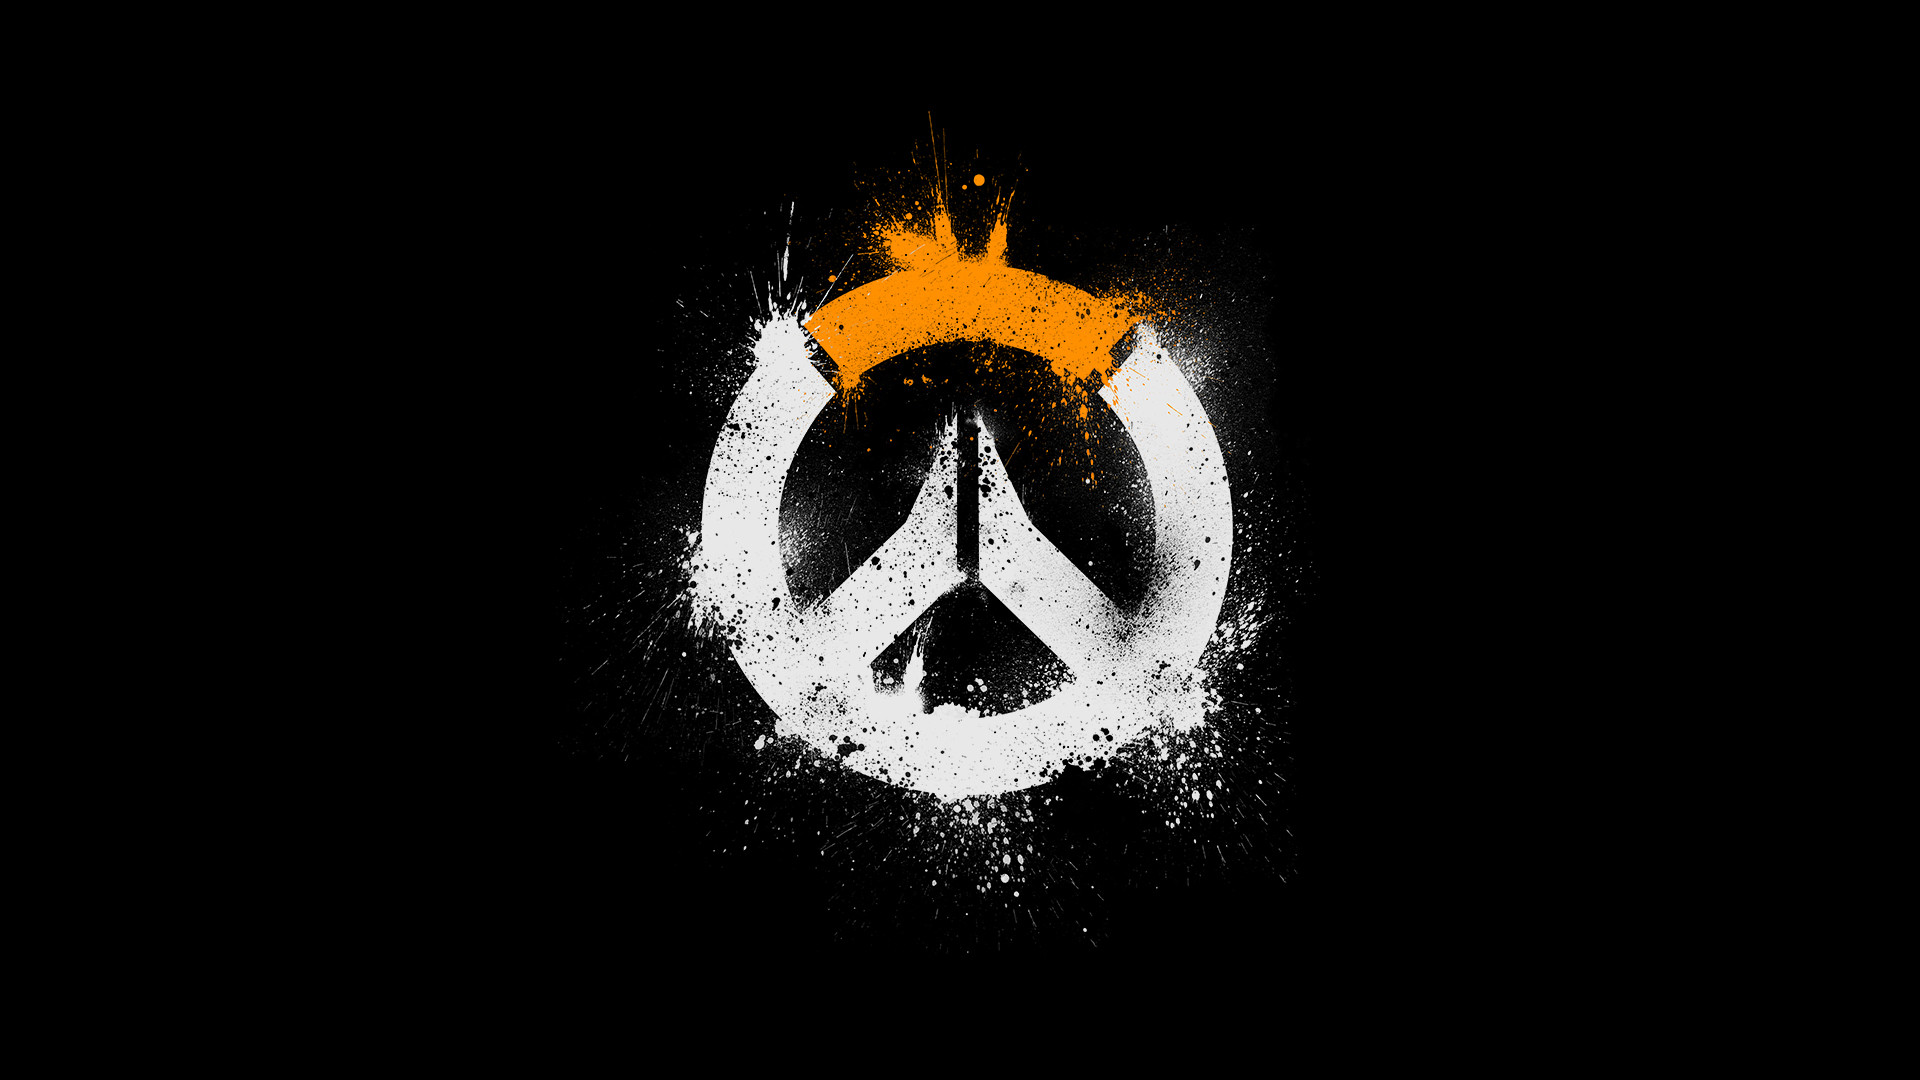 1920x1080 Overwatch Logo HD (1024x768 Resolution)